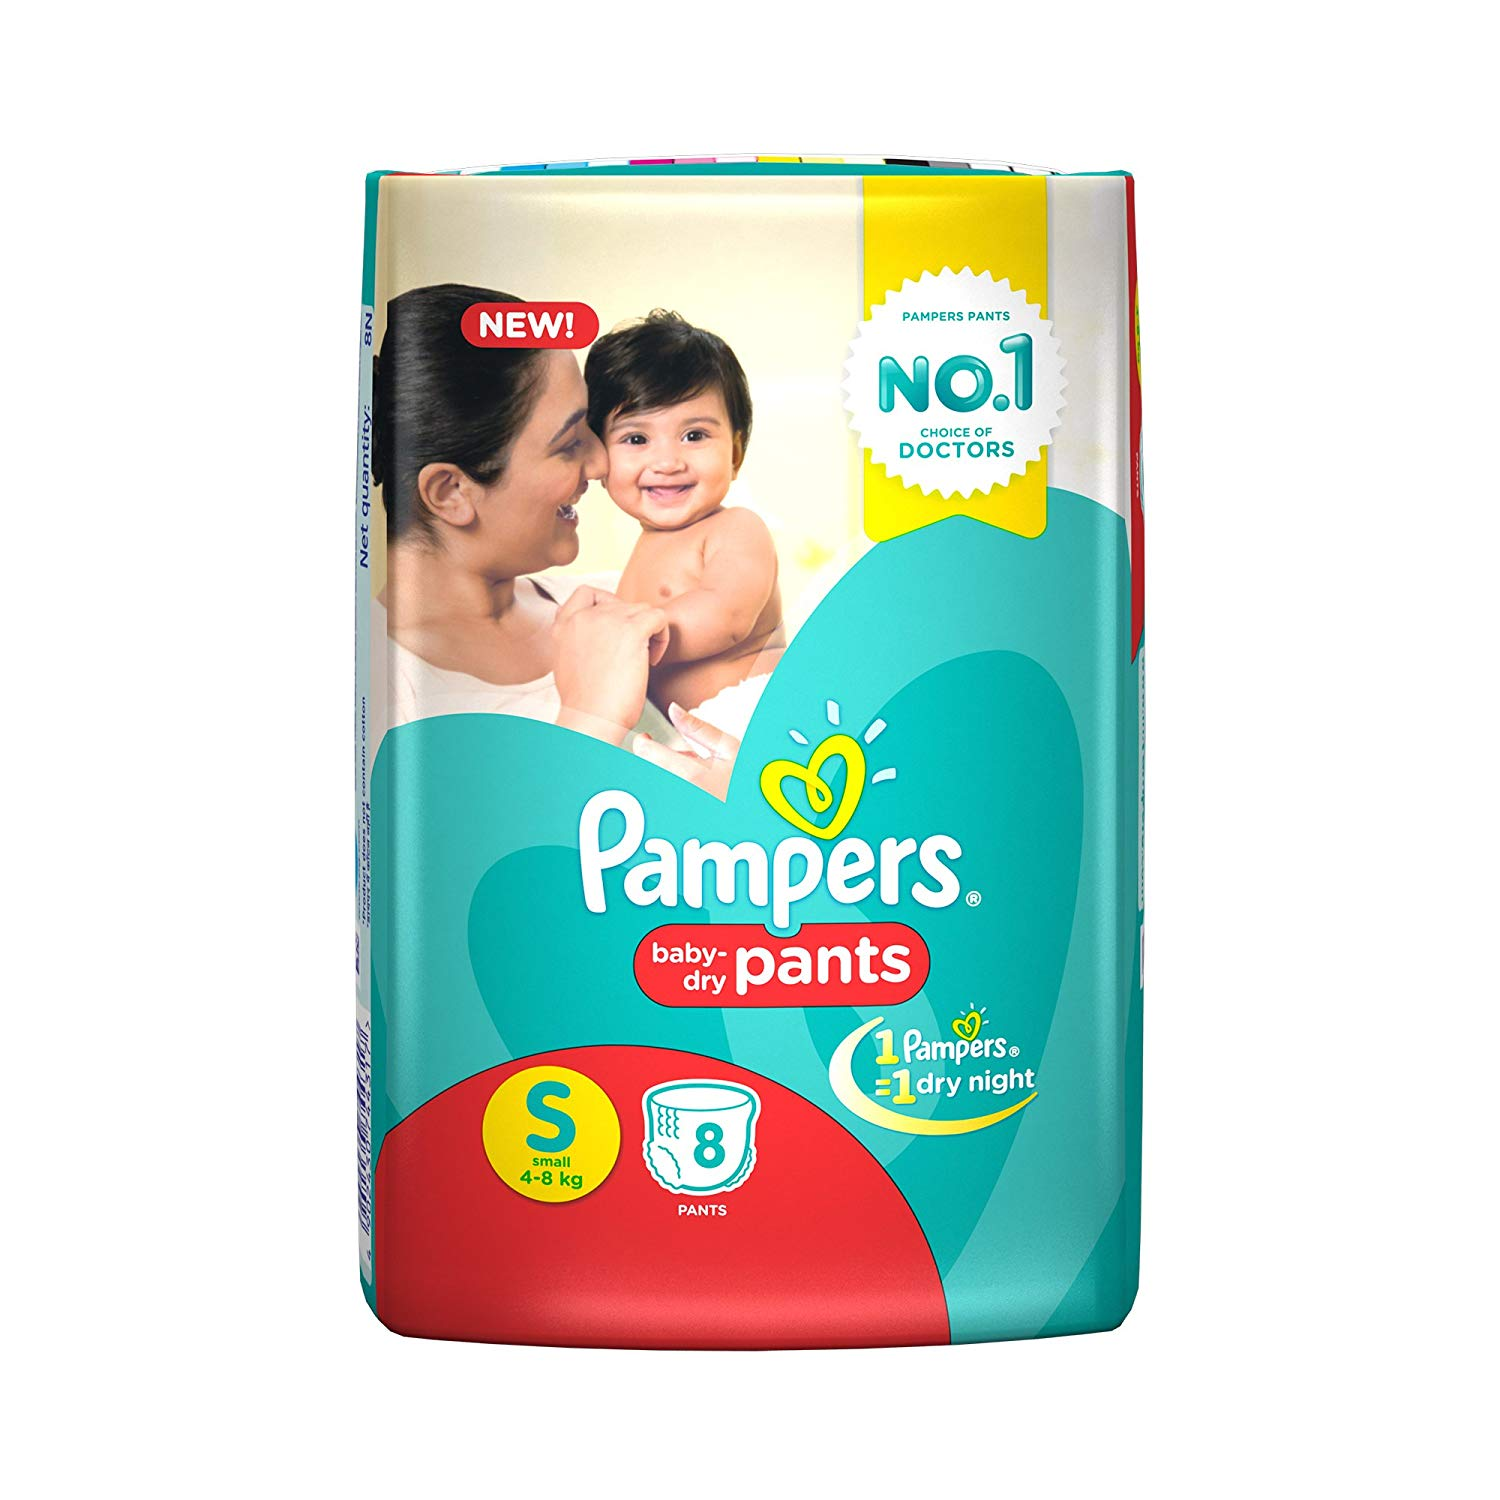 Pampers Small Size Diapers (8Count)